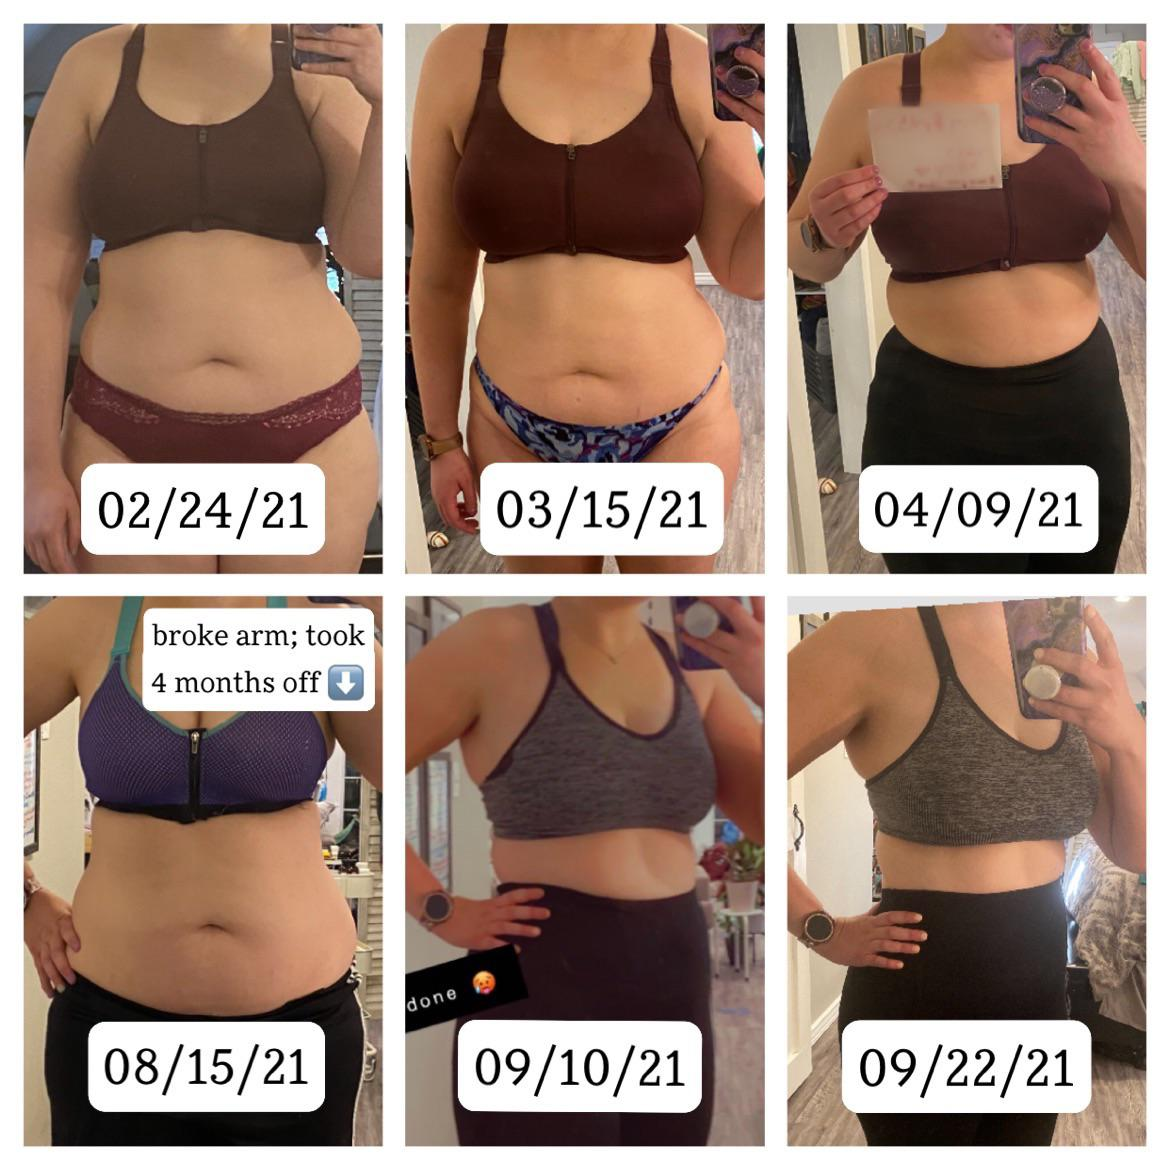 Before and After 30 lbs Weight Loss 5 feet 9 Female 225 lbs to 195 lbs